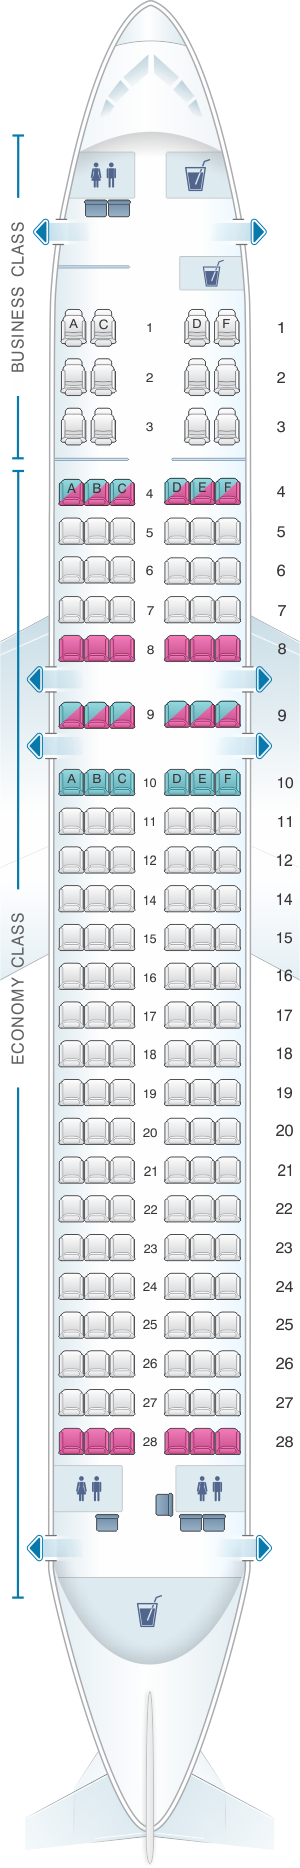 Seat map for Philippine Airlines Airbus A320 200 V2